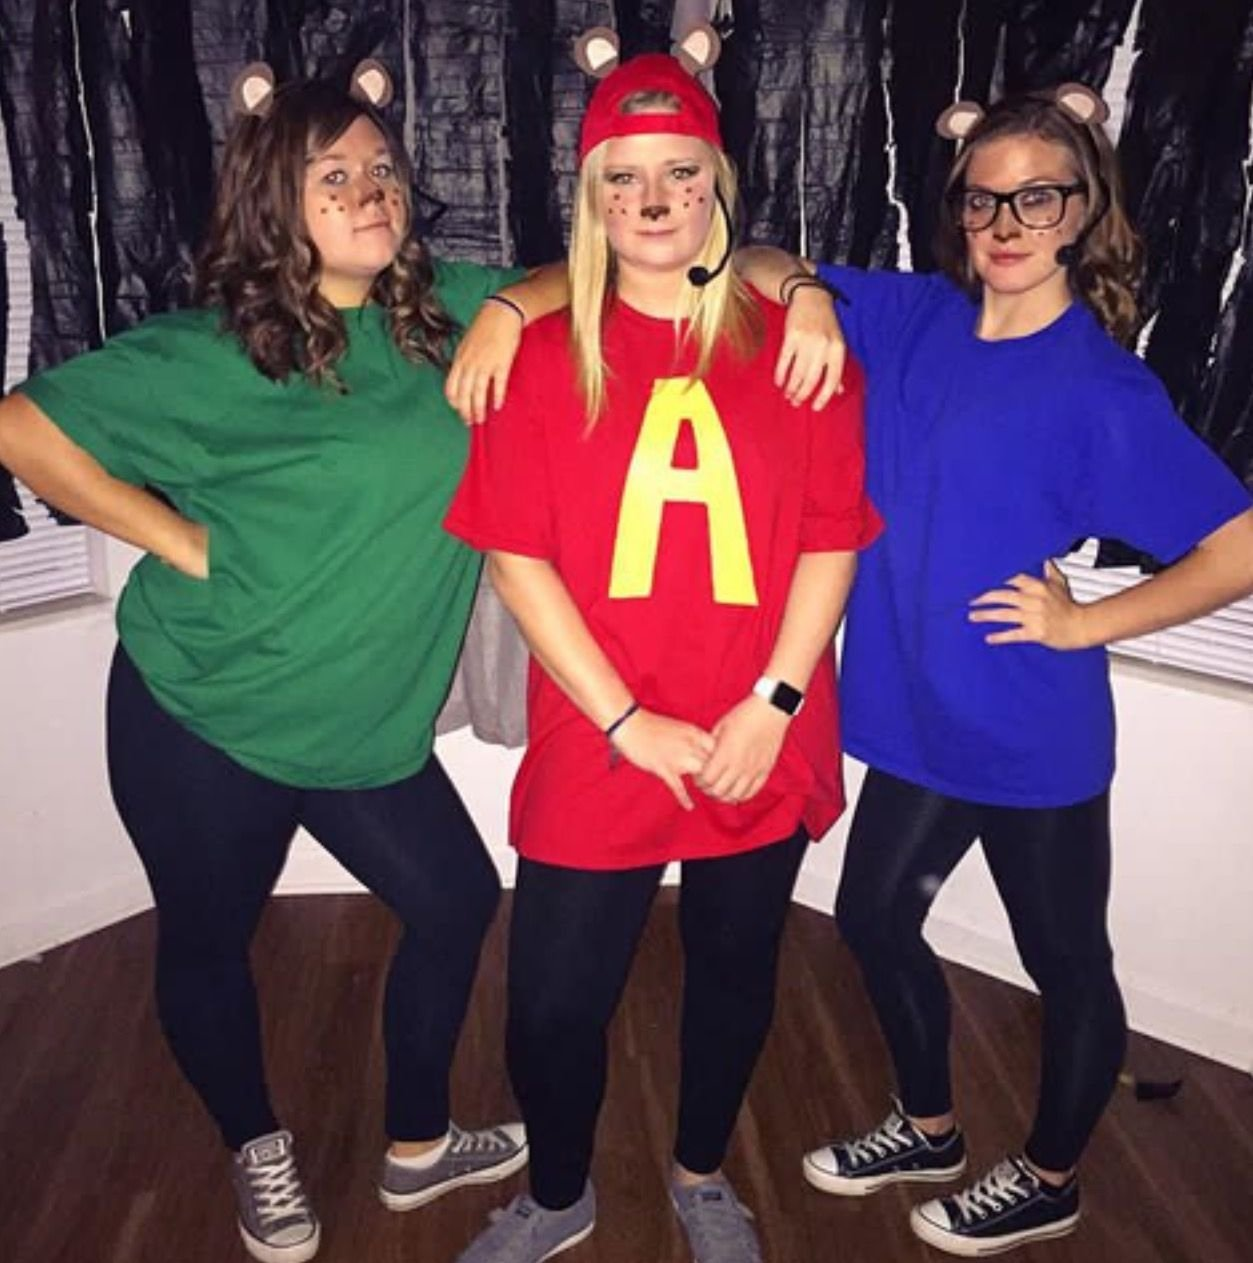 10 Awesome Halloween Costume Ideas For 3 People alvin and the chipmunks halloween costume for three people fall 1 2020